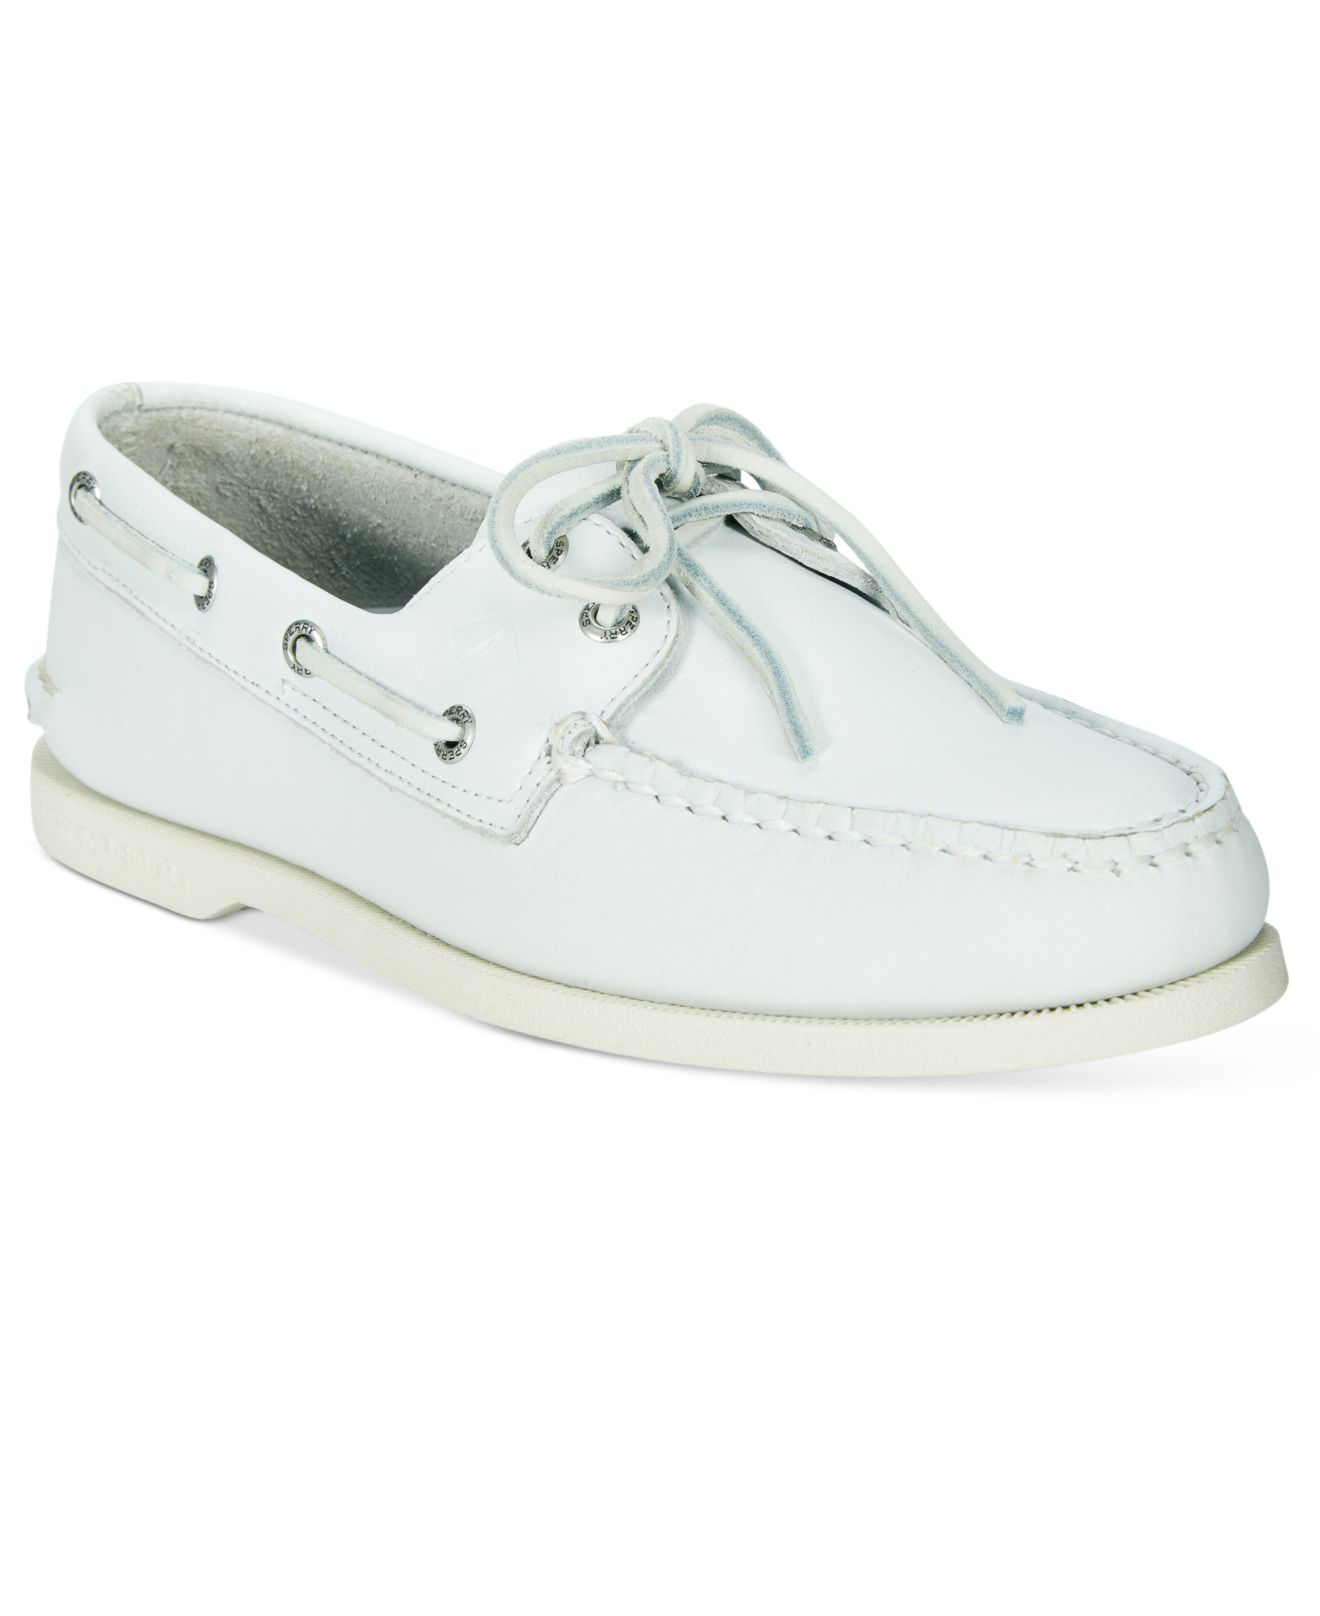 sperry top sider s authentic original a o boat shoes